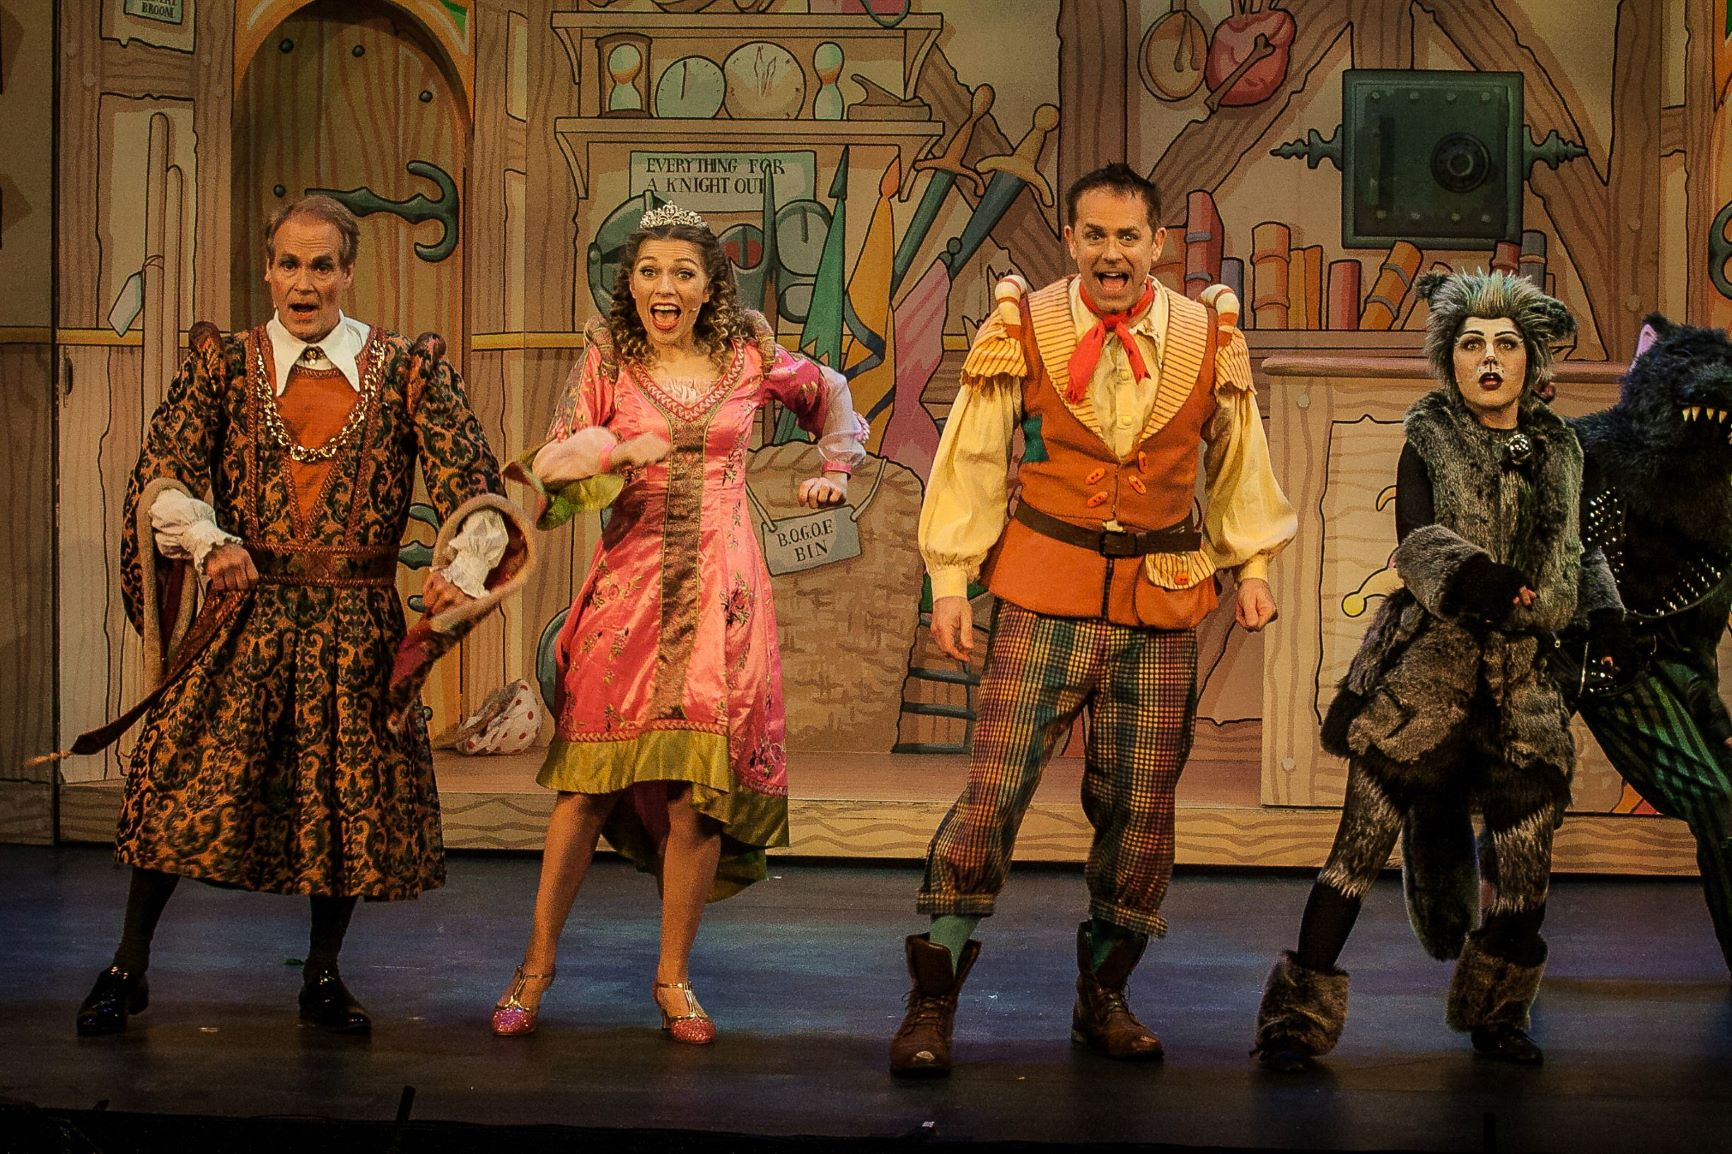 Chris Jarvis (second right) as his award winning title role of Dick Whittington